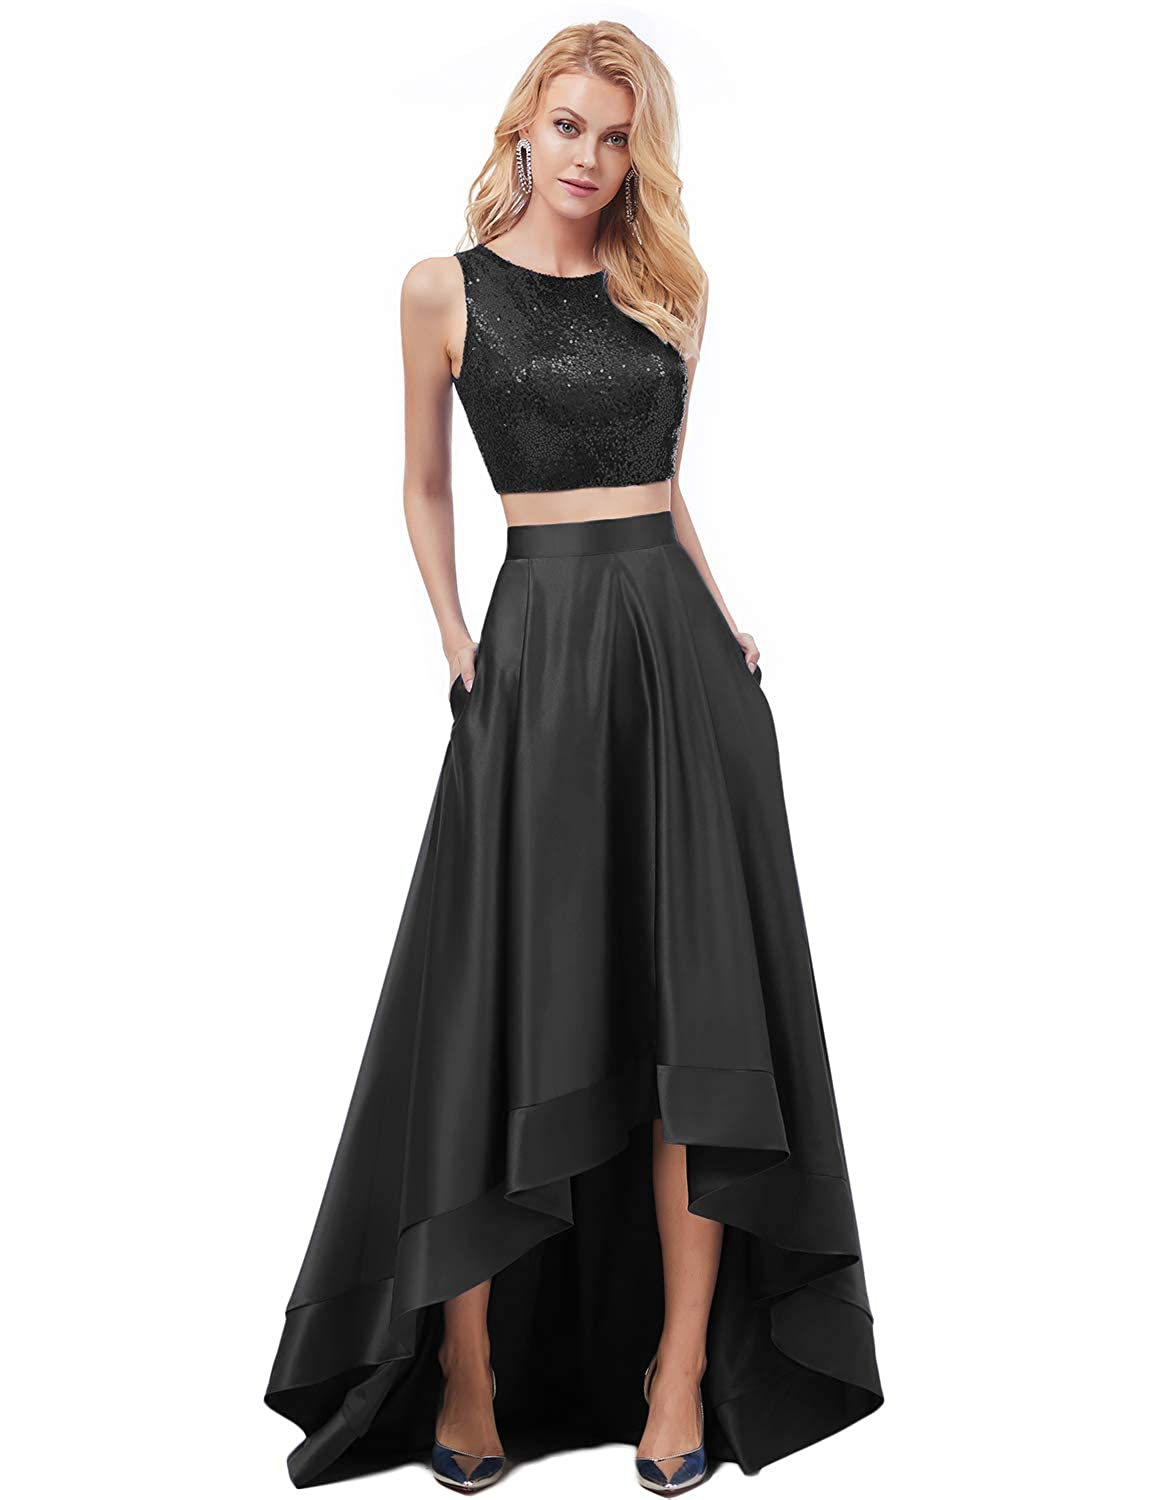 Black YSMei Womens Two Piece Sequin Bodice High Low Satin Evening Prom Dress ON039